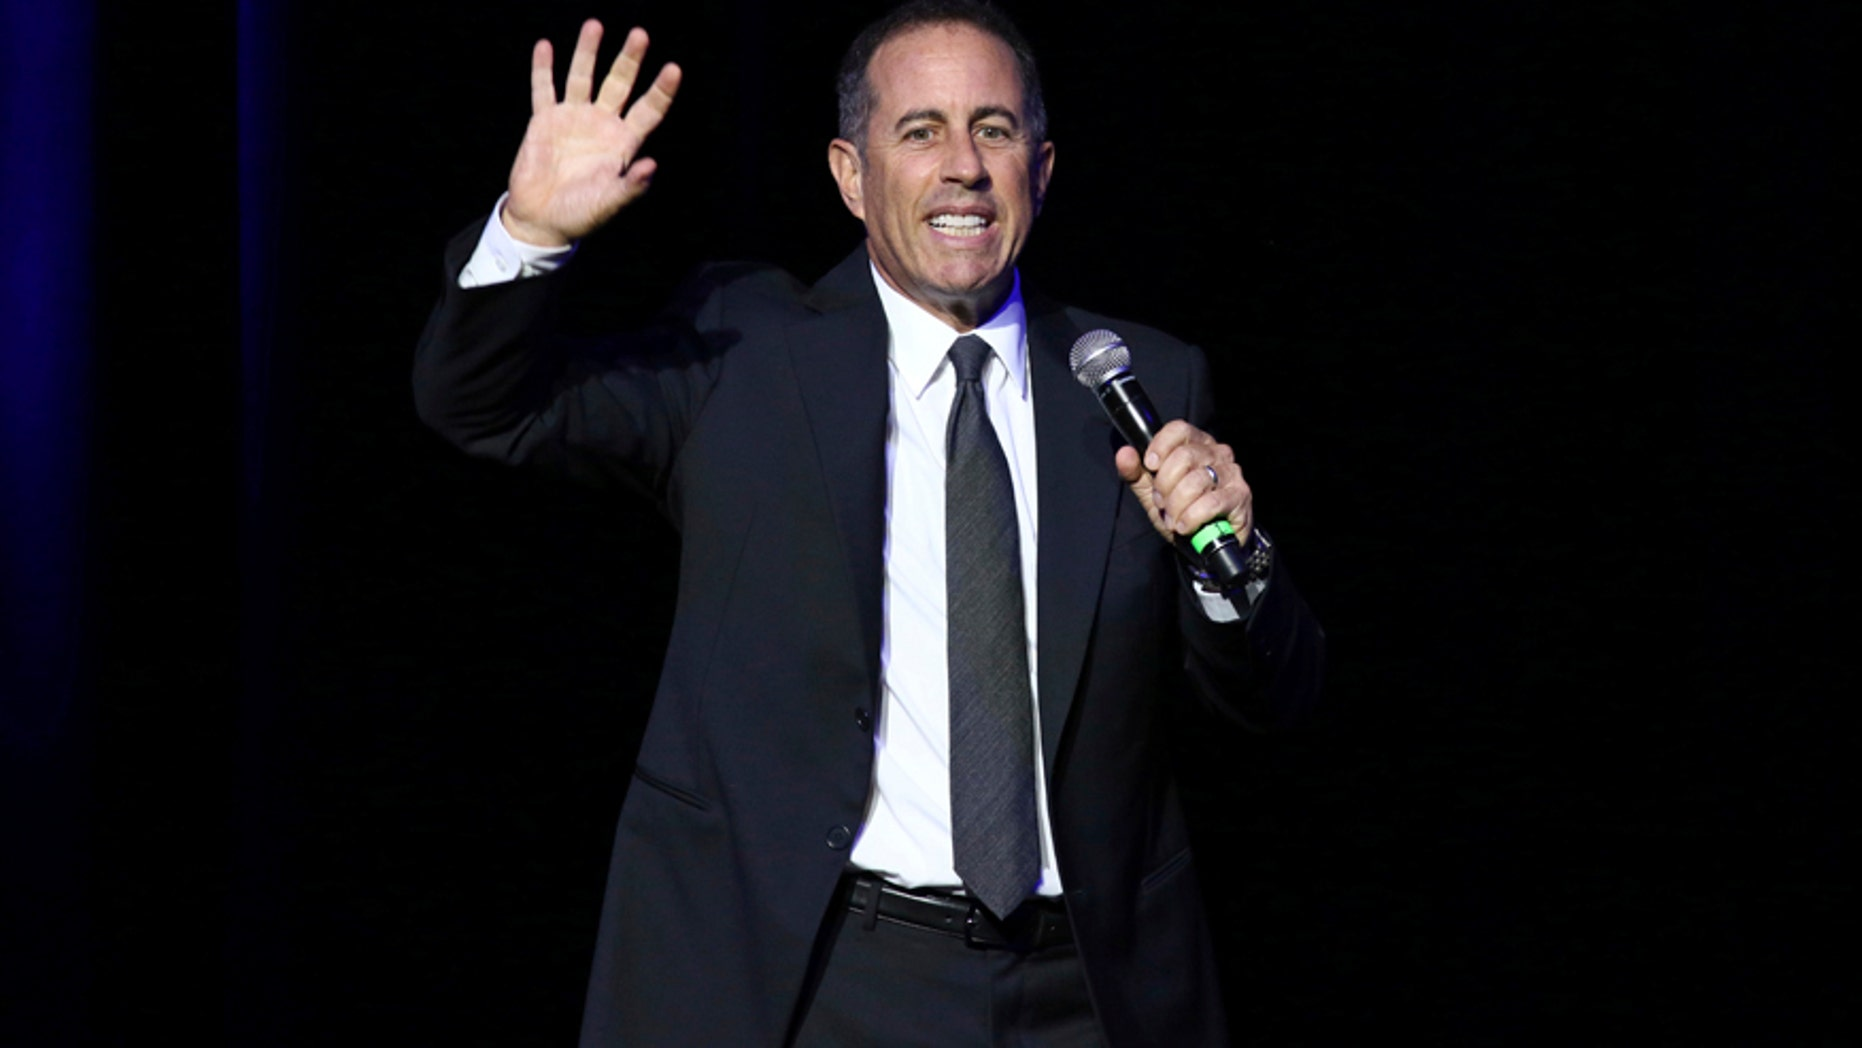 This Nov. 1, 2016 file photo shows Jerry Seinfeld performing at Stand Up For Heroes in New York. Seinfeld Hart will headline the Colossal Clusterfest, a three-day comedy event on June 2-4 in San Francisco.